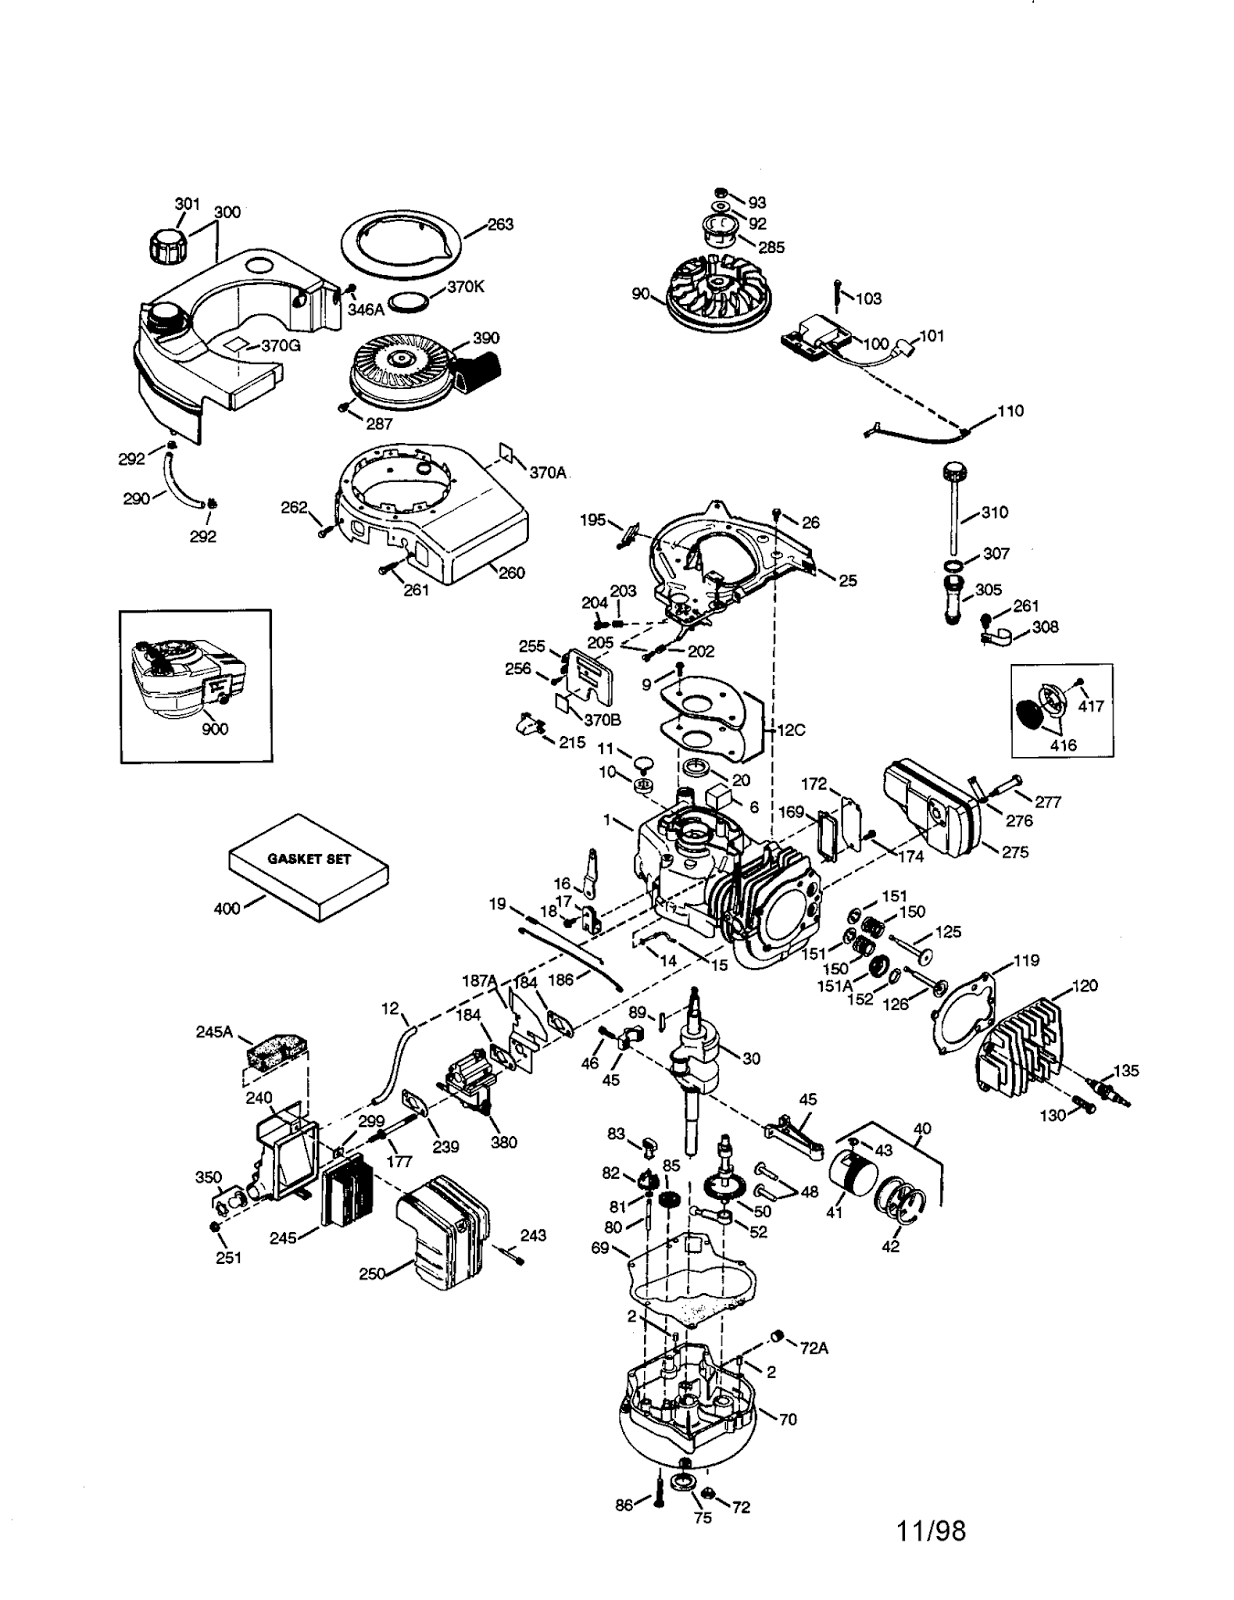 Tecumseh Engine Parts Diagram on winch parts diagram